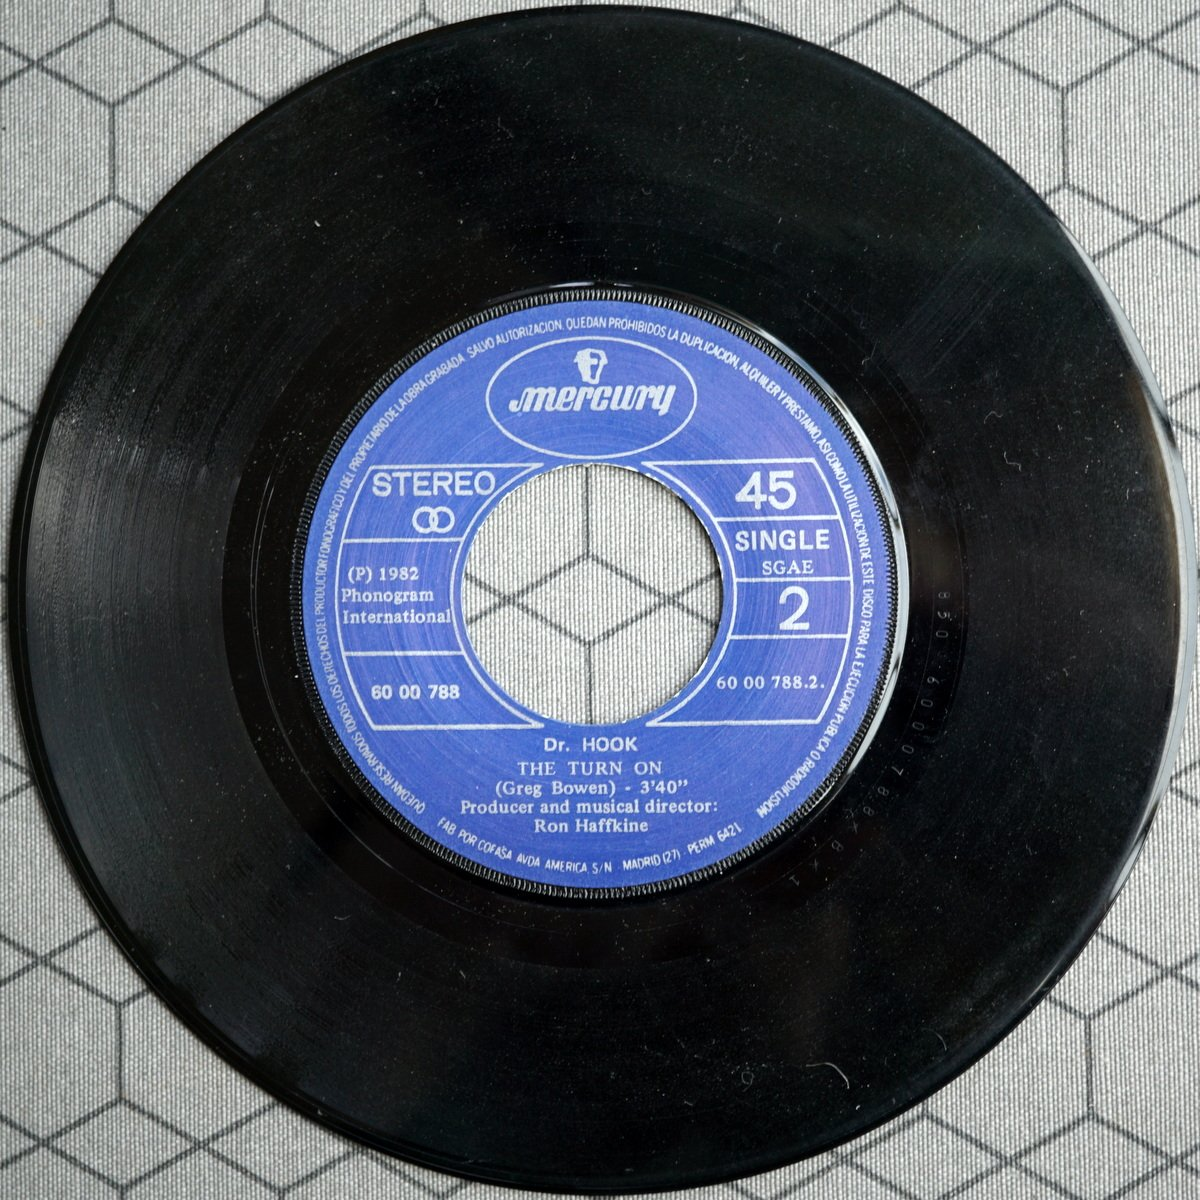 S PD A1 - 6000 788 - Baby Make Her Blue Jeans Talk - 1982 - ES - 4